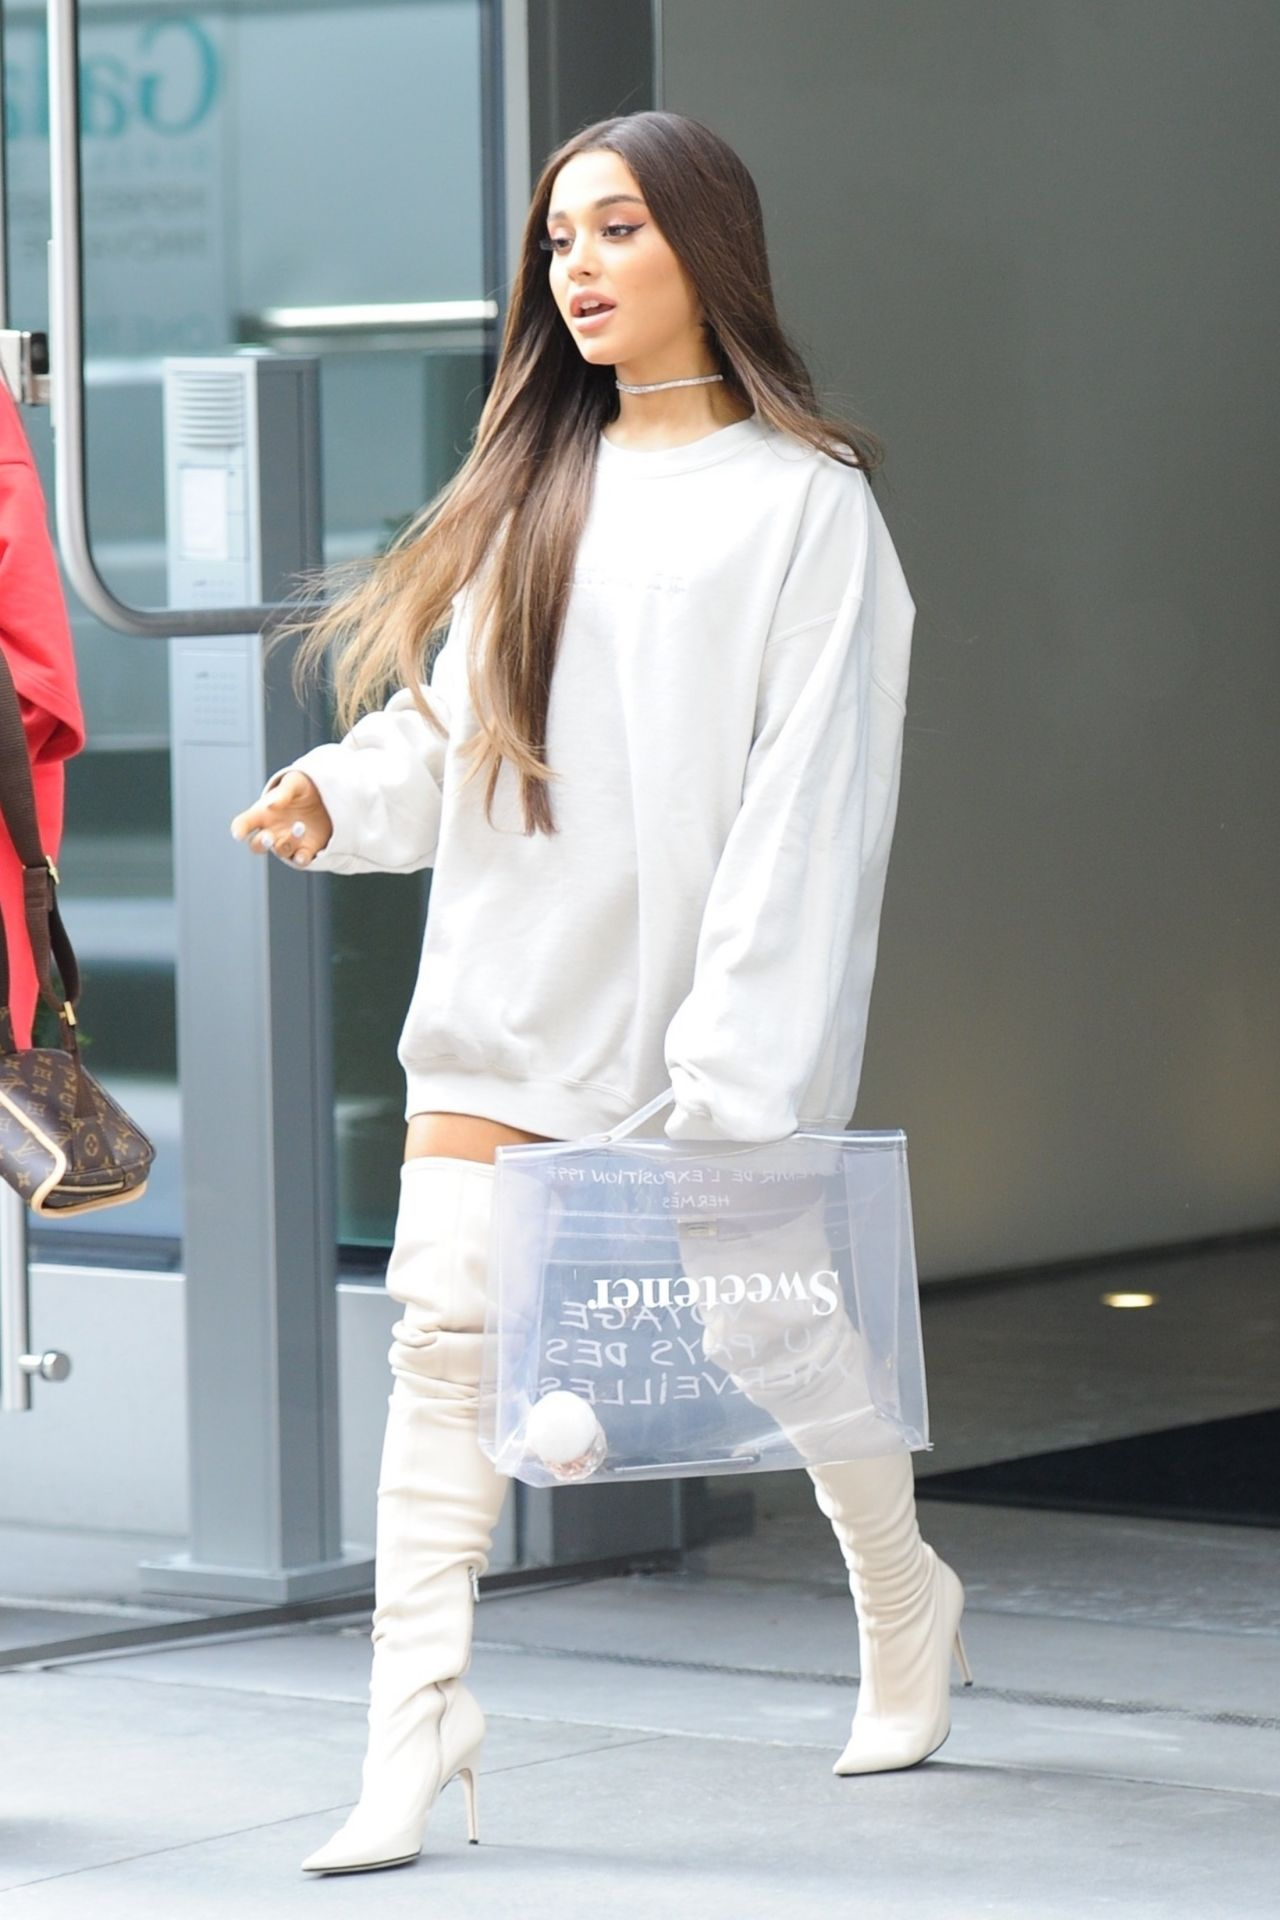 Ariana Grande - Out in NYC 08/17/2018 Gwen Stefani